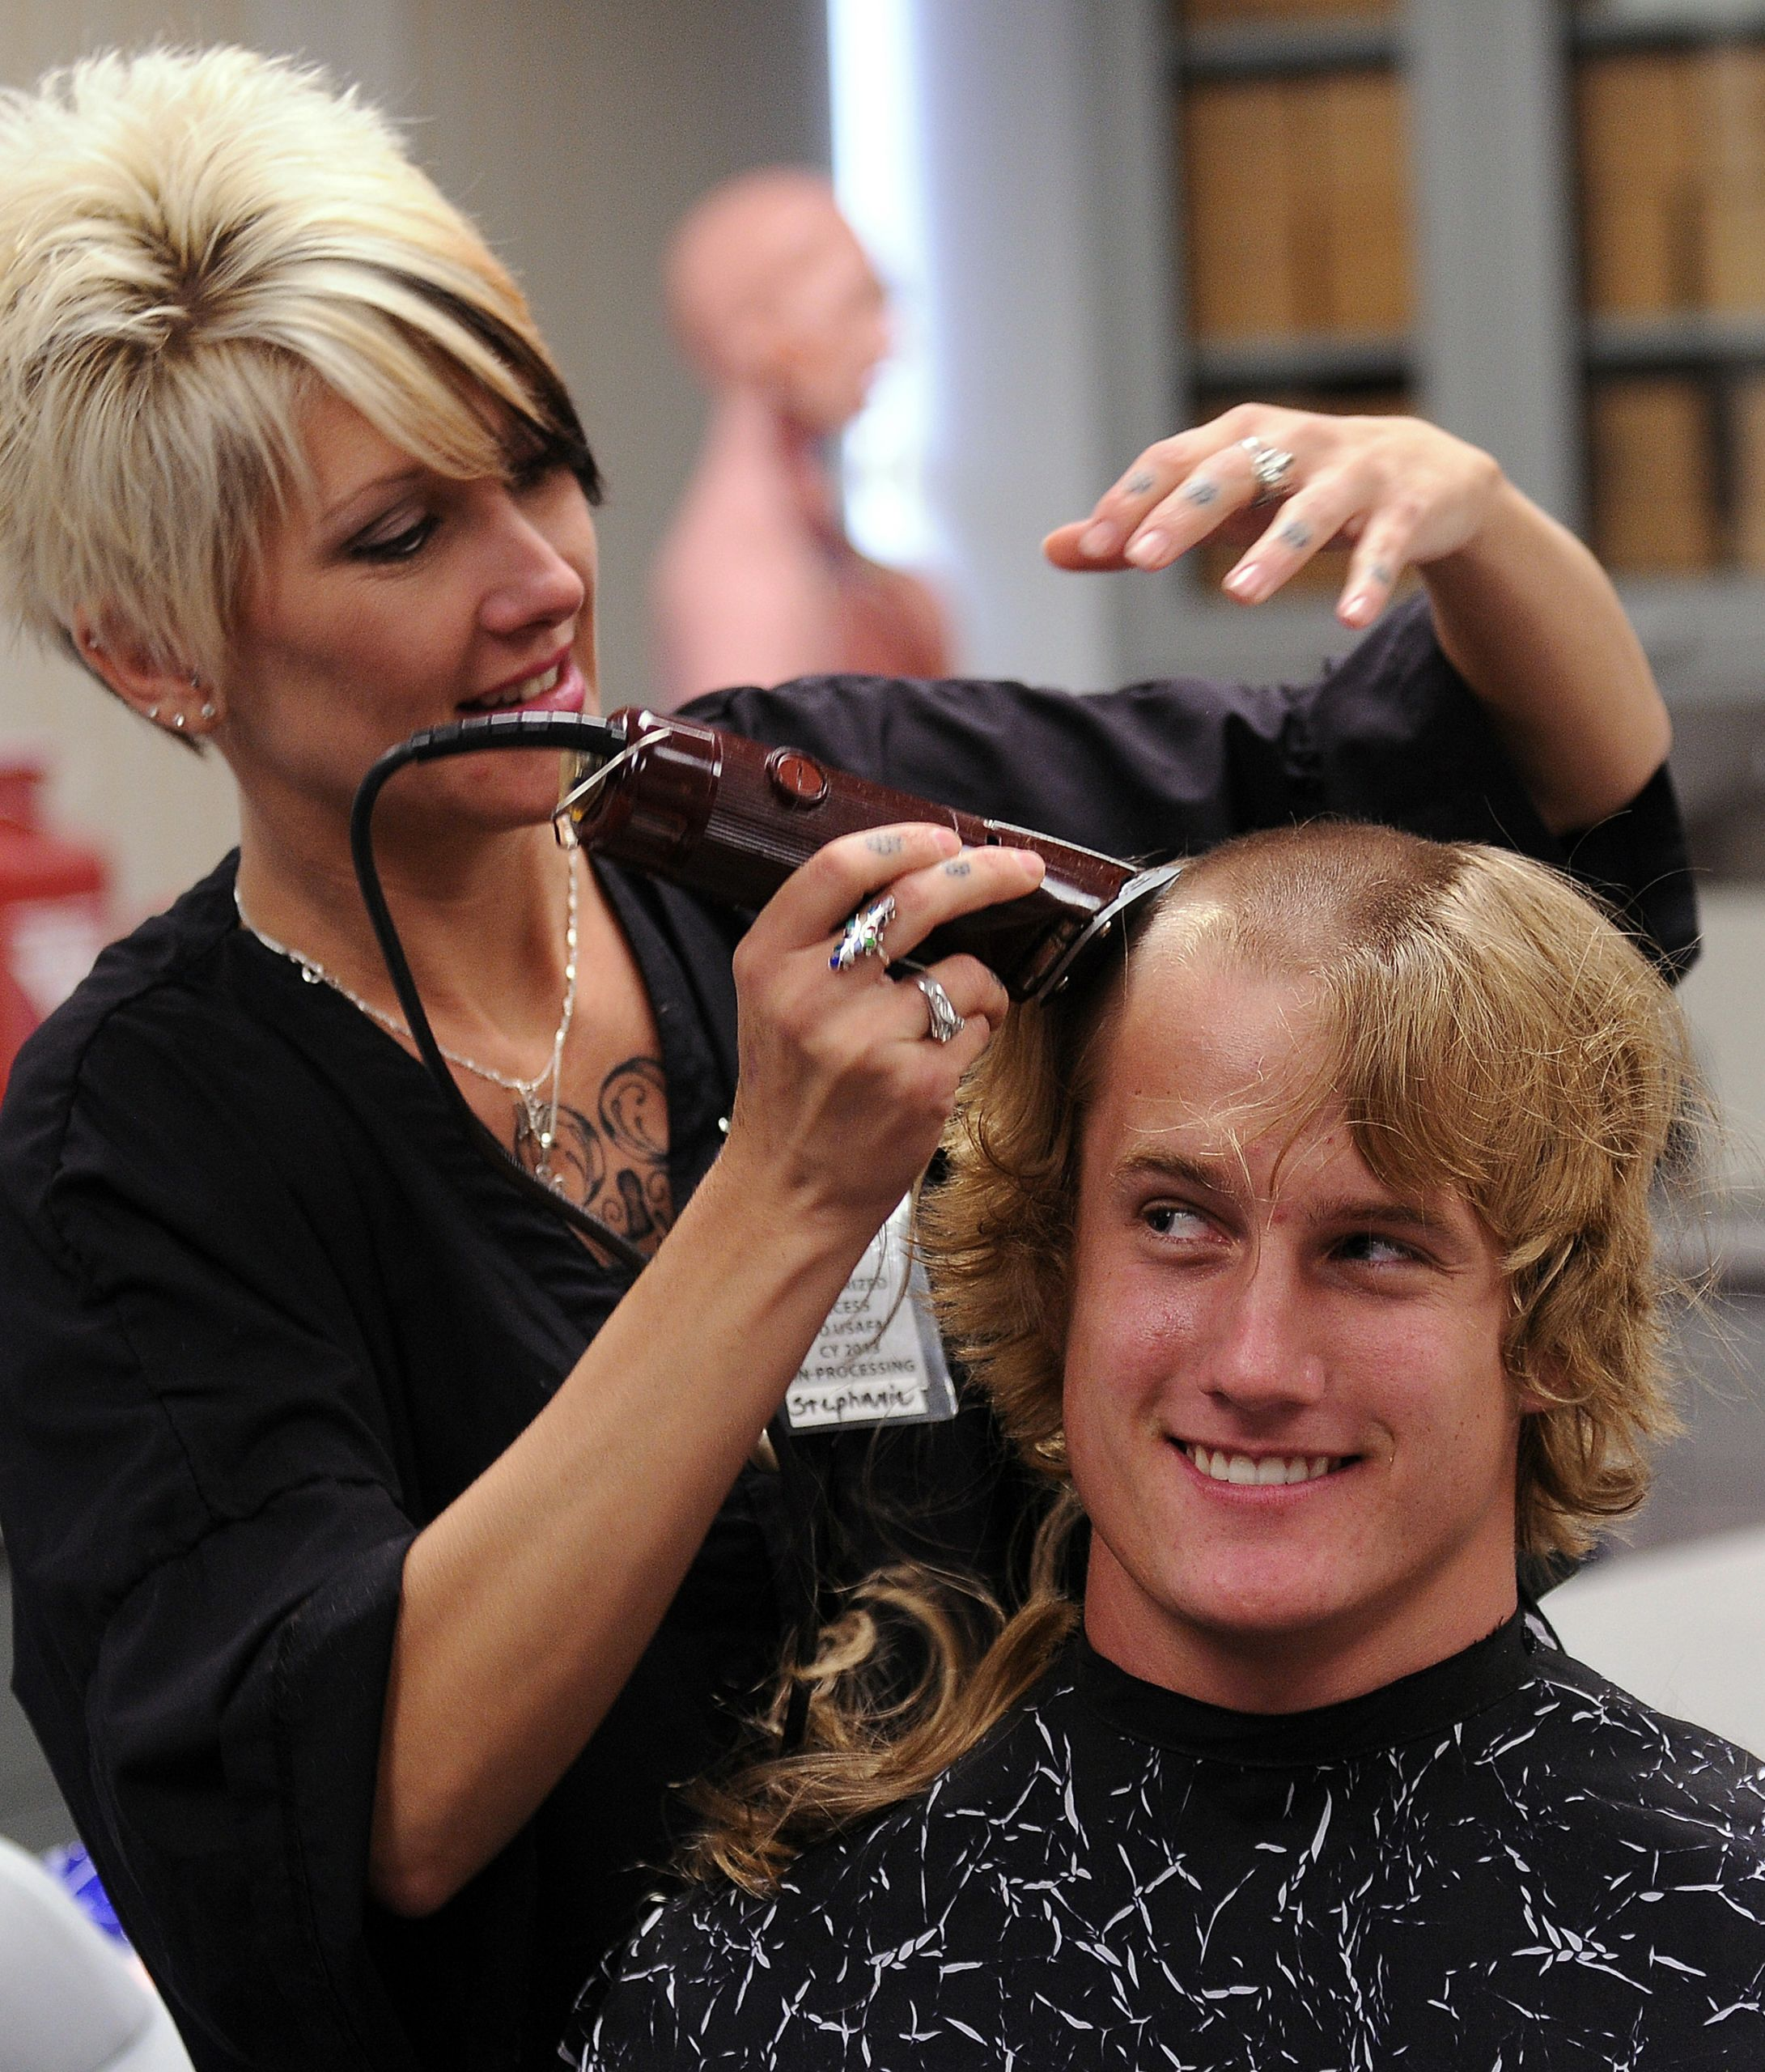 Female Navy Haircuts  Know Your Military Member By Haircut – The Military Spouse